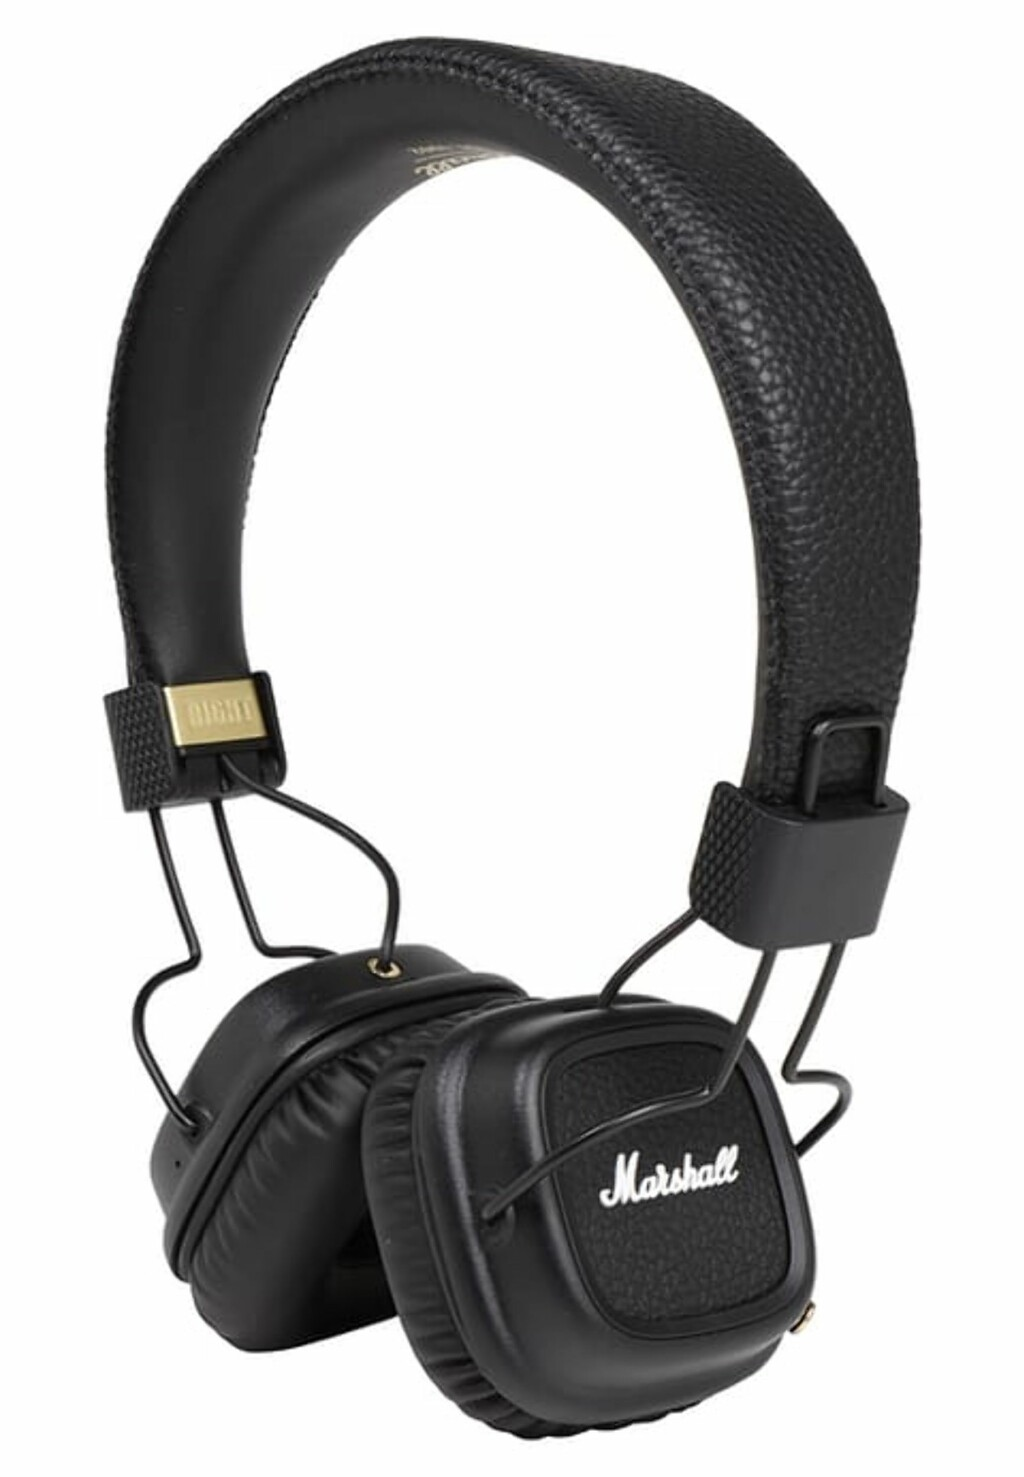 Headset fra Marshall via Zalando.no |1495,-